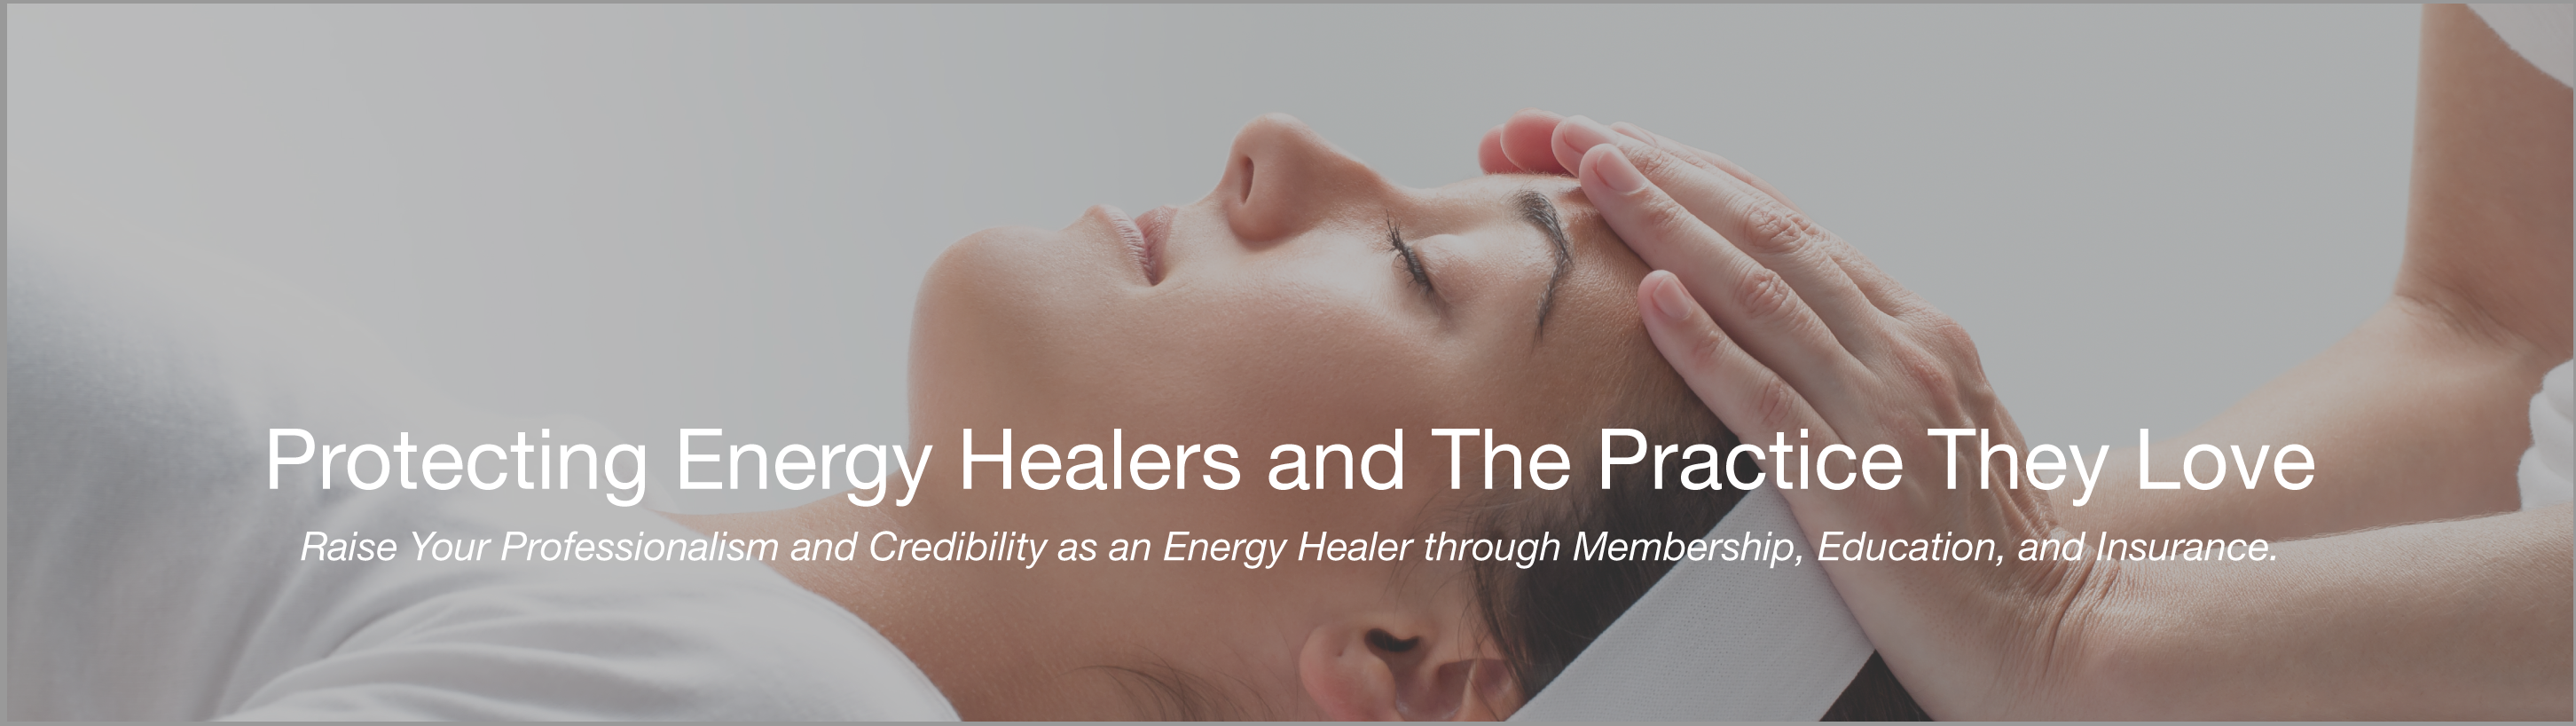 Energy Medicine Professional Association - Protect Your Practice